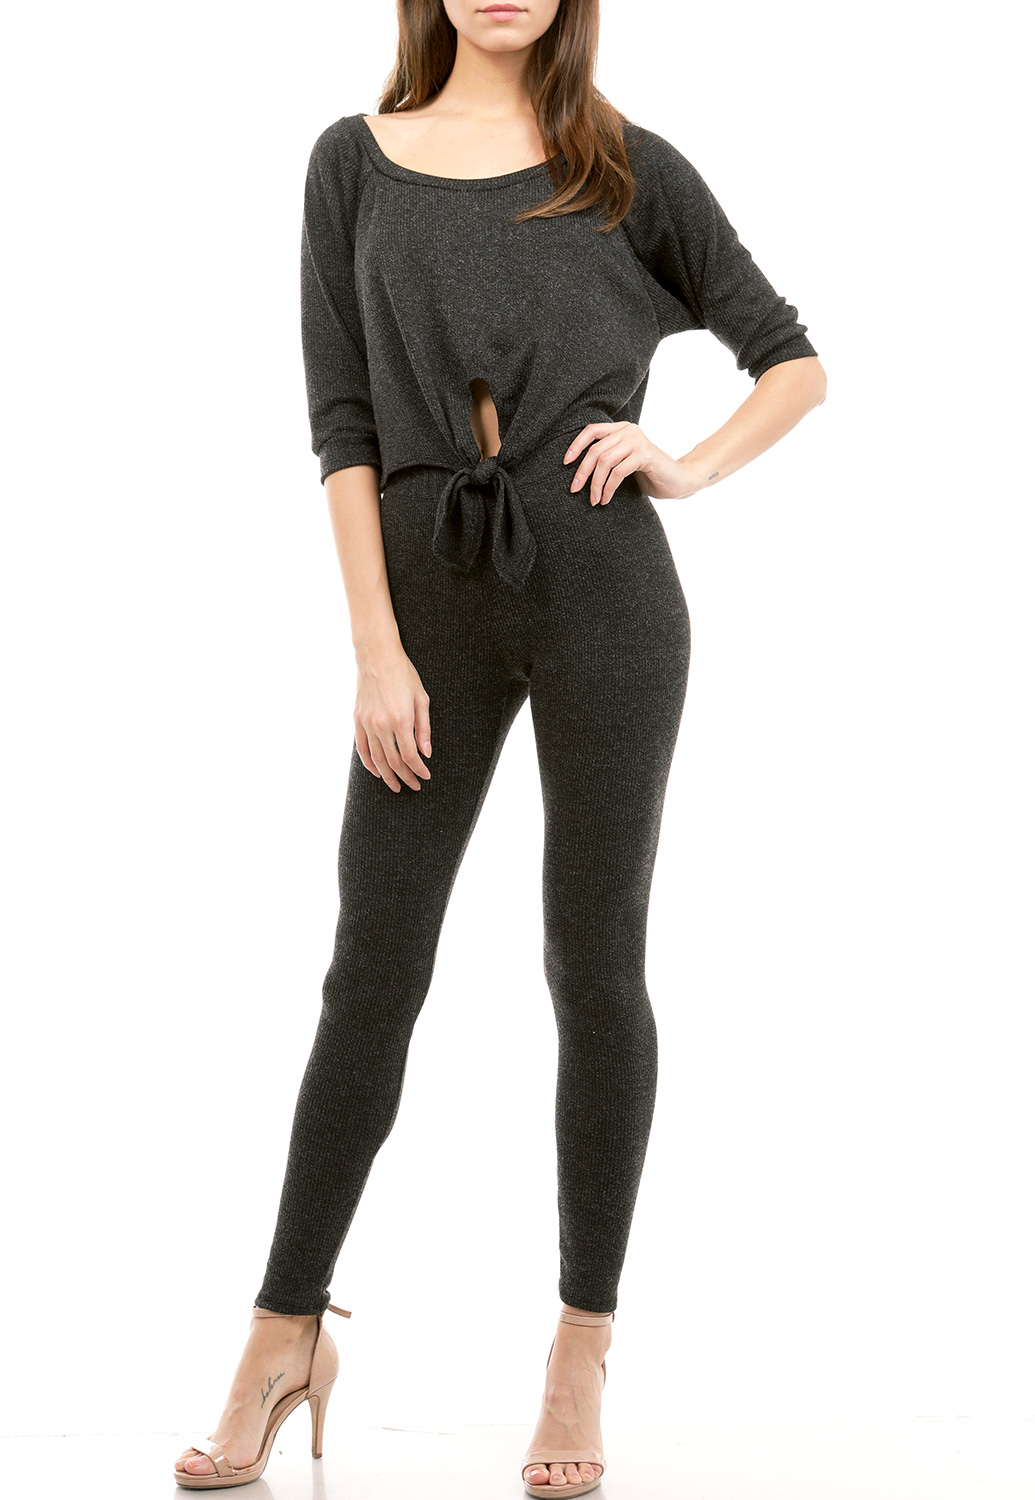 Tie Front Knit Top W/Bottoms Set